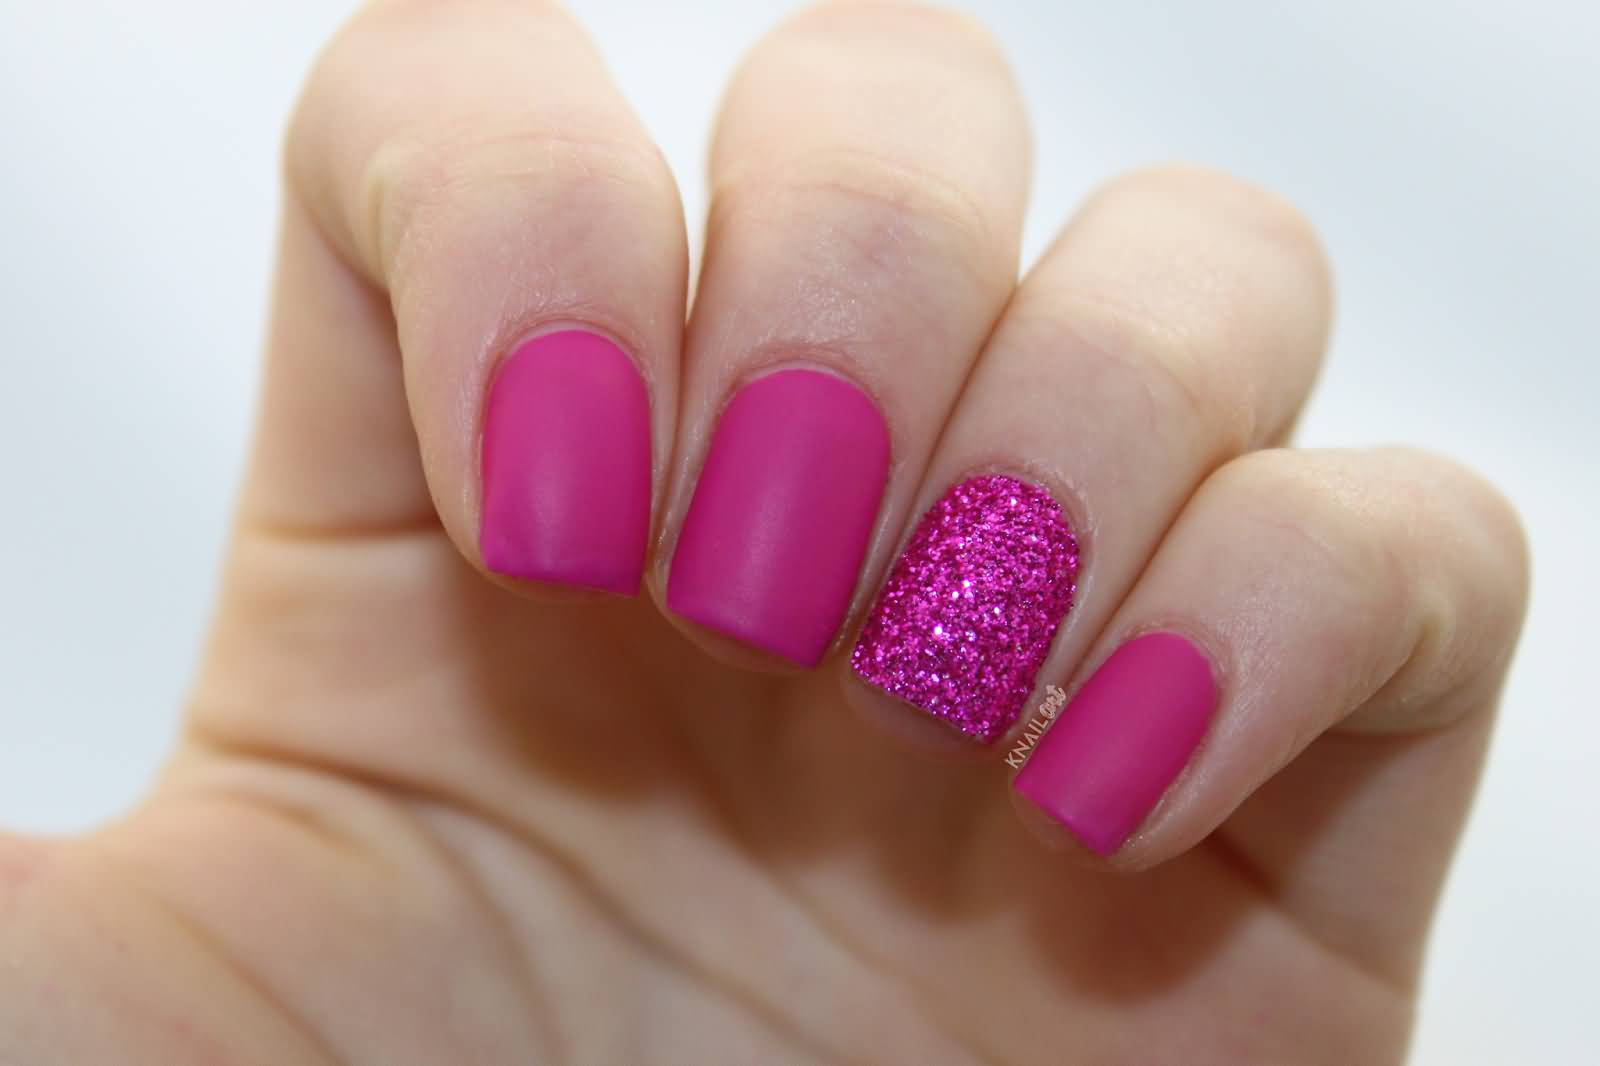 Great Pink With Sparkle Glitter Accent Nail Art